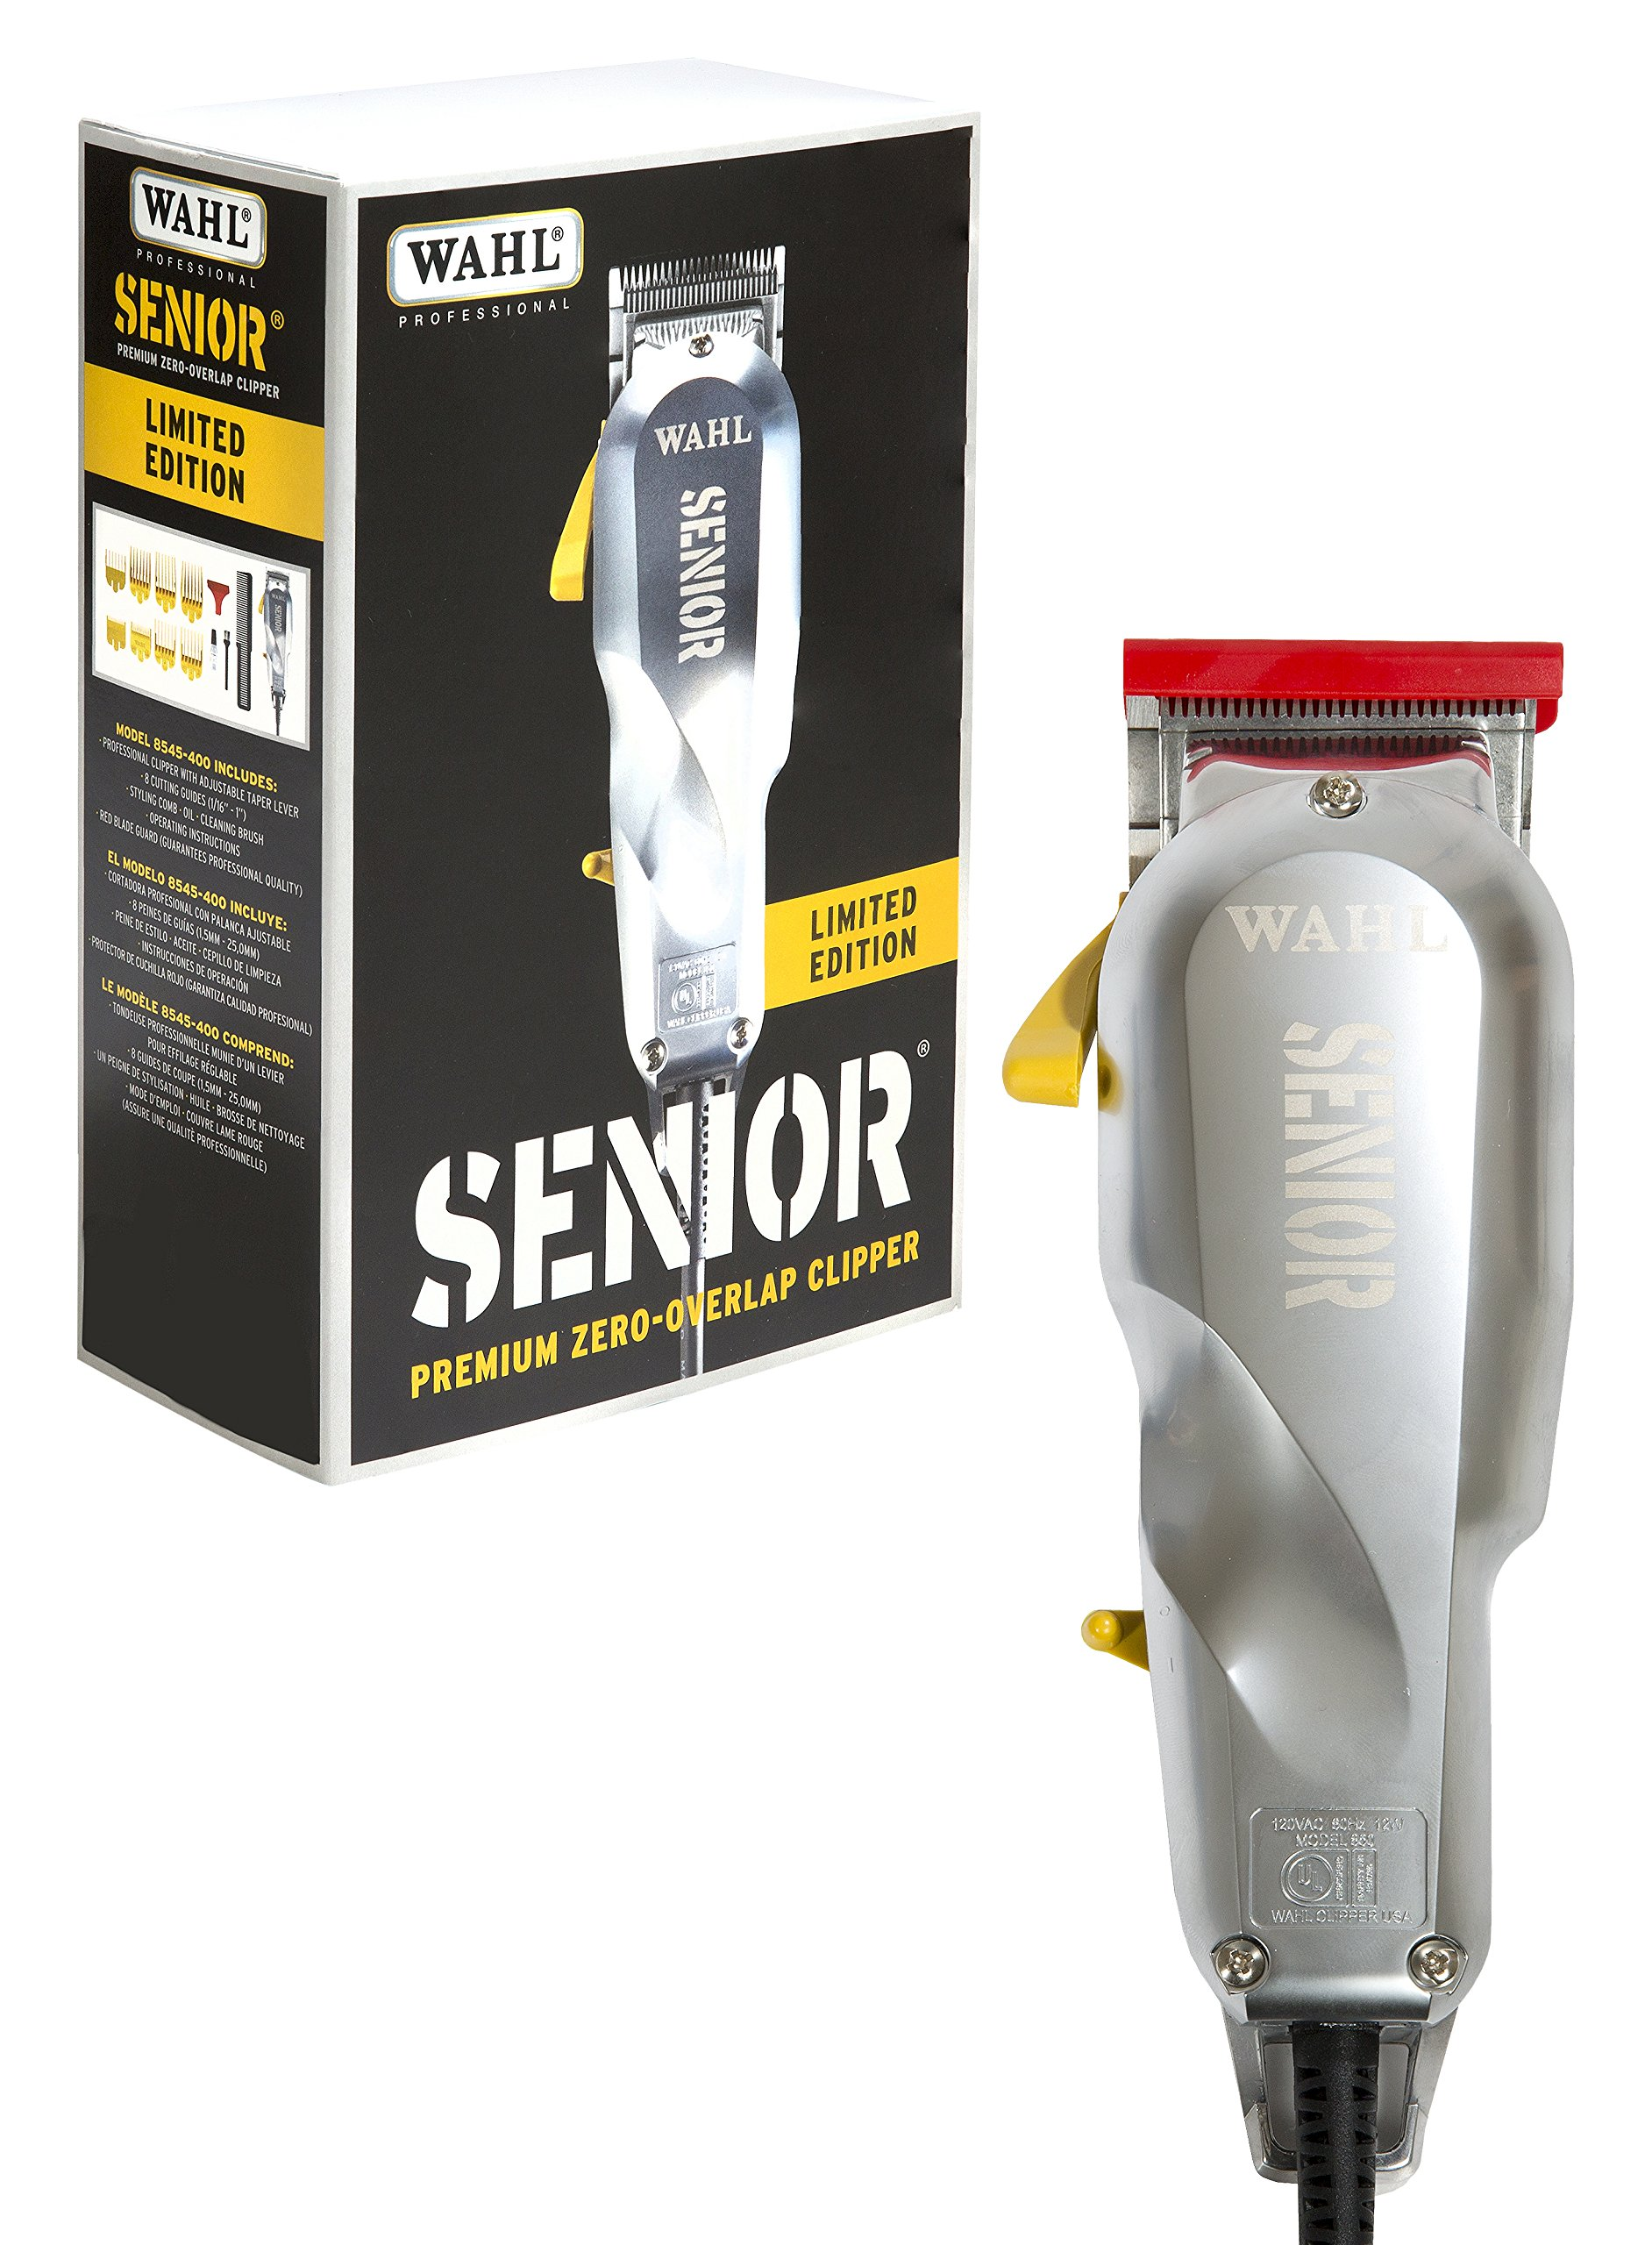 Wahl Professional Limited Edition Industrial Senior #8545-400 - Great for Professional Stylists and Barbers - Perfect for Heavy-Duty Cutting, Tapering, Fades, and Blends